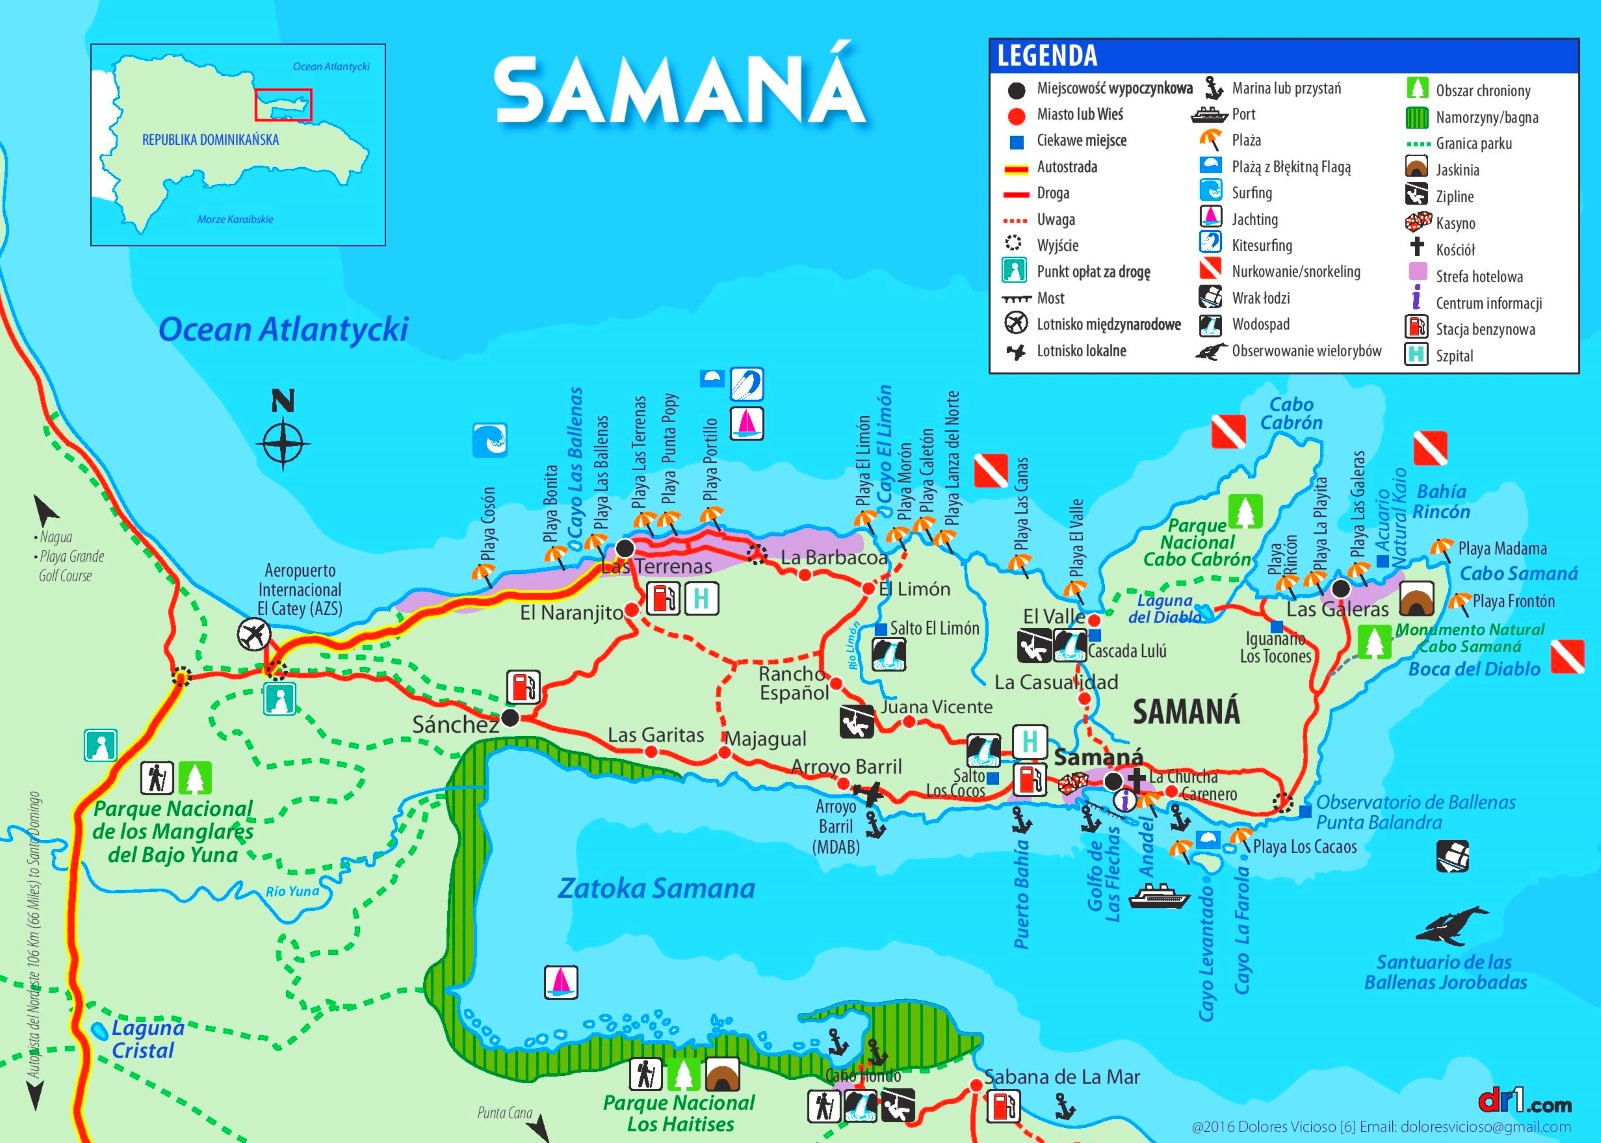 Saman Peninsula tourist map